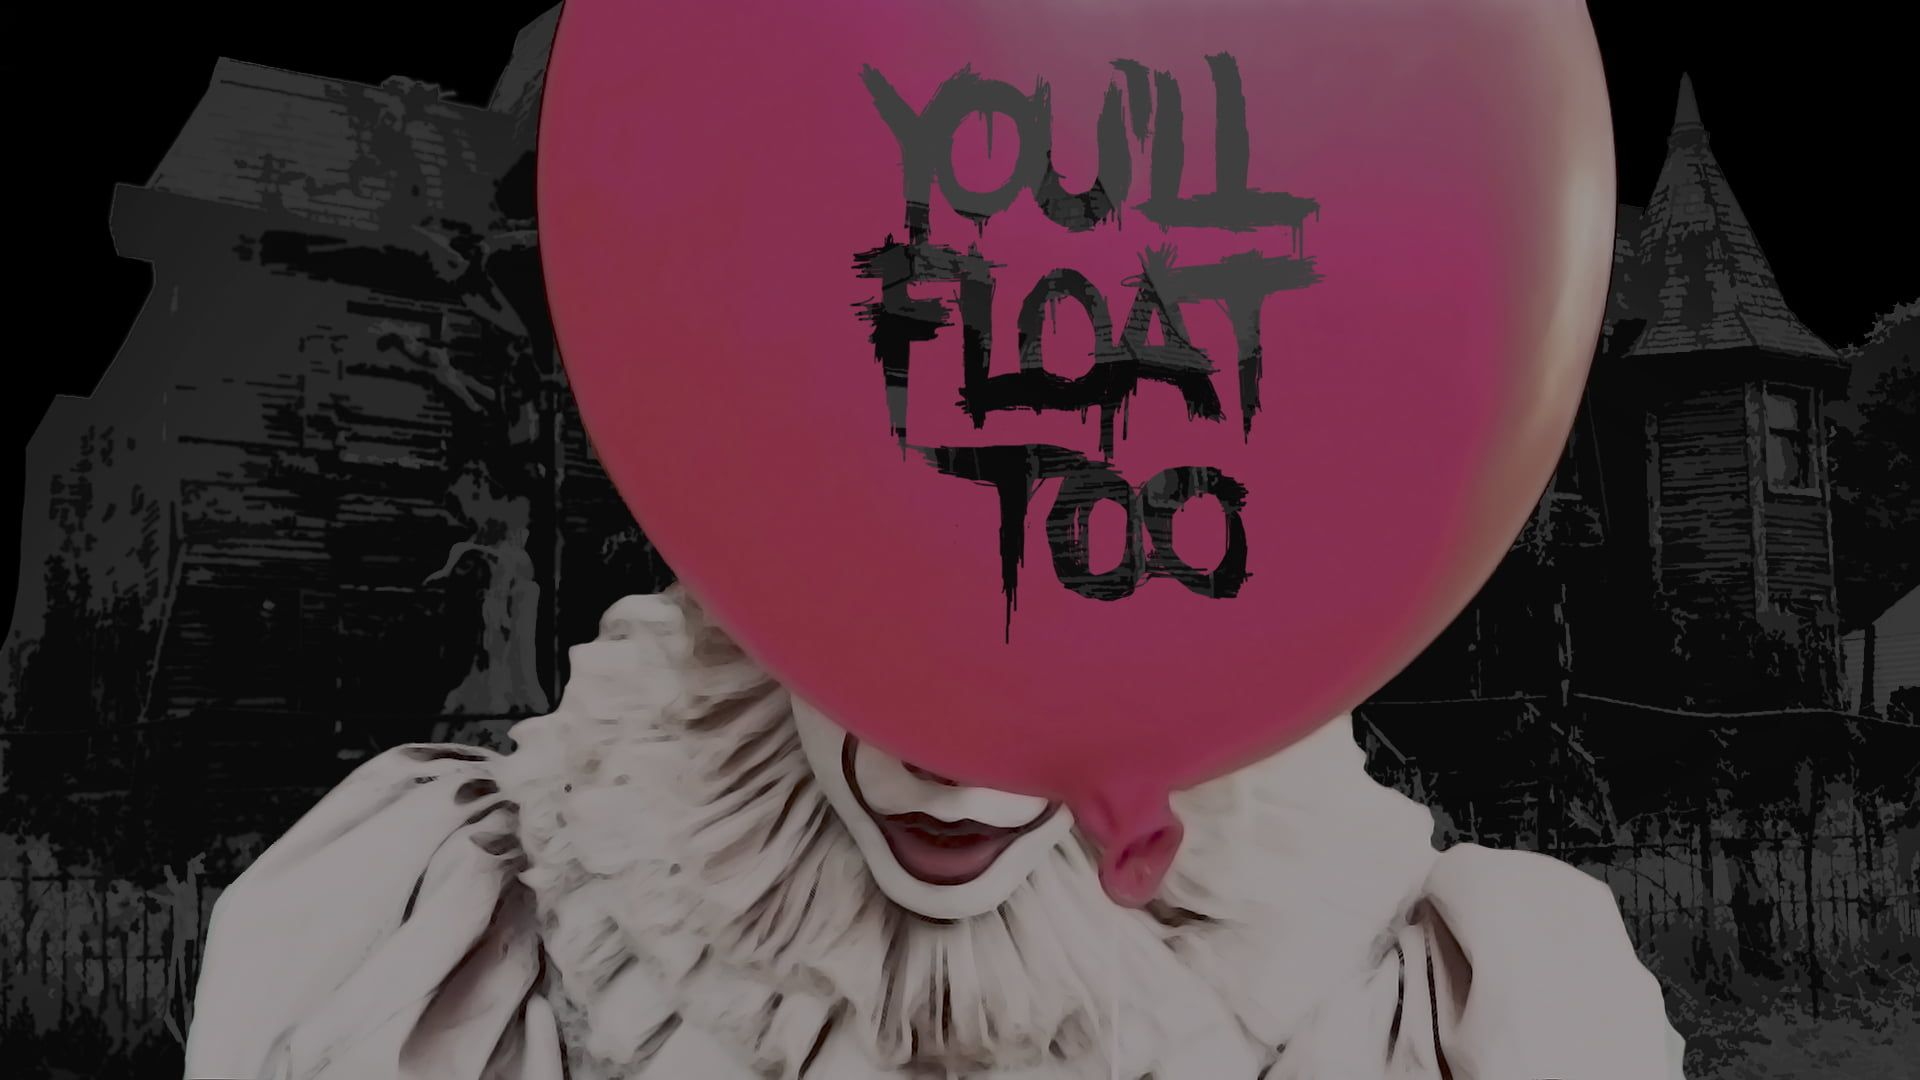 You Ll Float Too It Wallpaper Pennywise It Movie You Will Float Too Clowns Movies 1080p Wallpaper Hdwallpaper Wallpaper Pennywise Indian Army Wallpapers